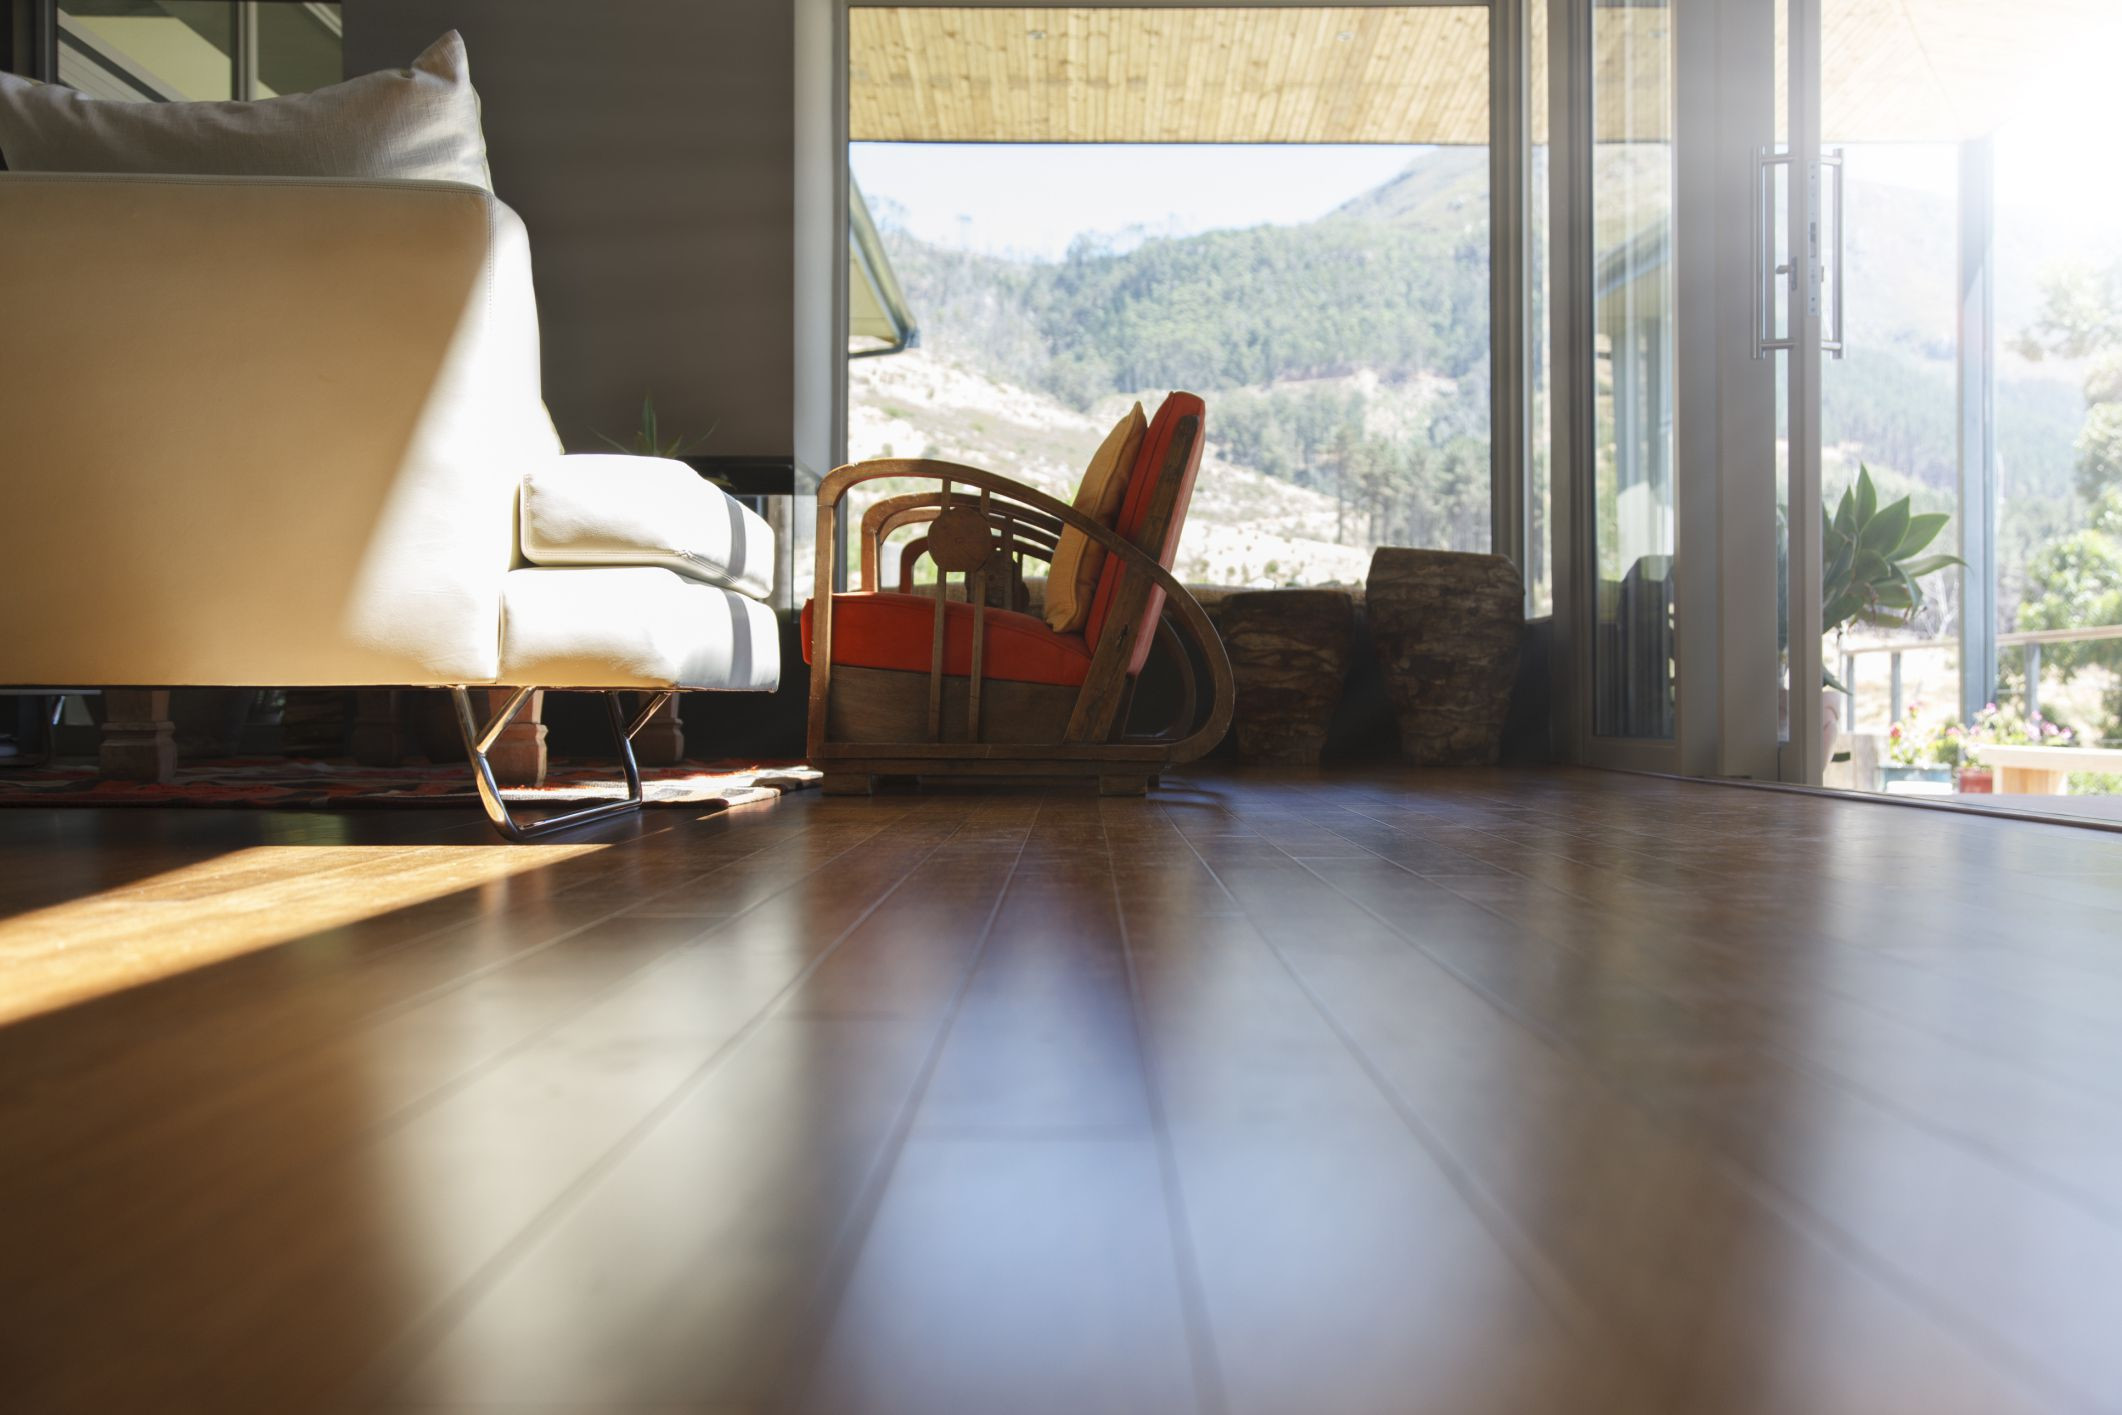 grs hardwood flooring of floating floors basics types and pros and cons for exotic hardwood flooring 525439899 56a49d3a3df78cf77283453d